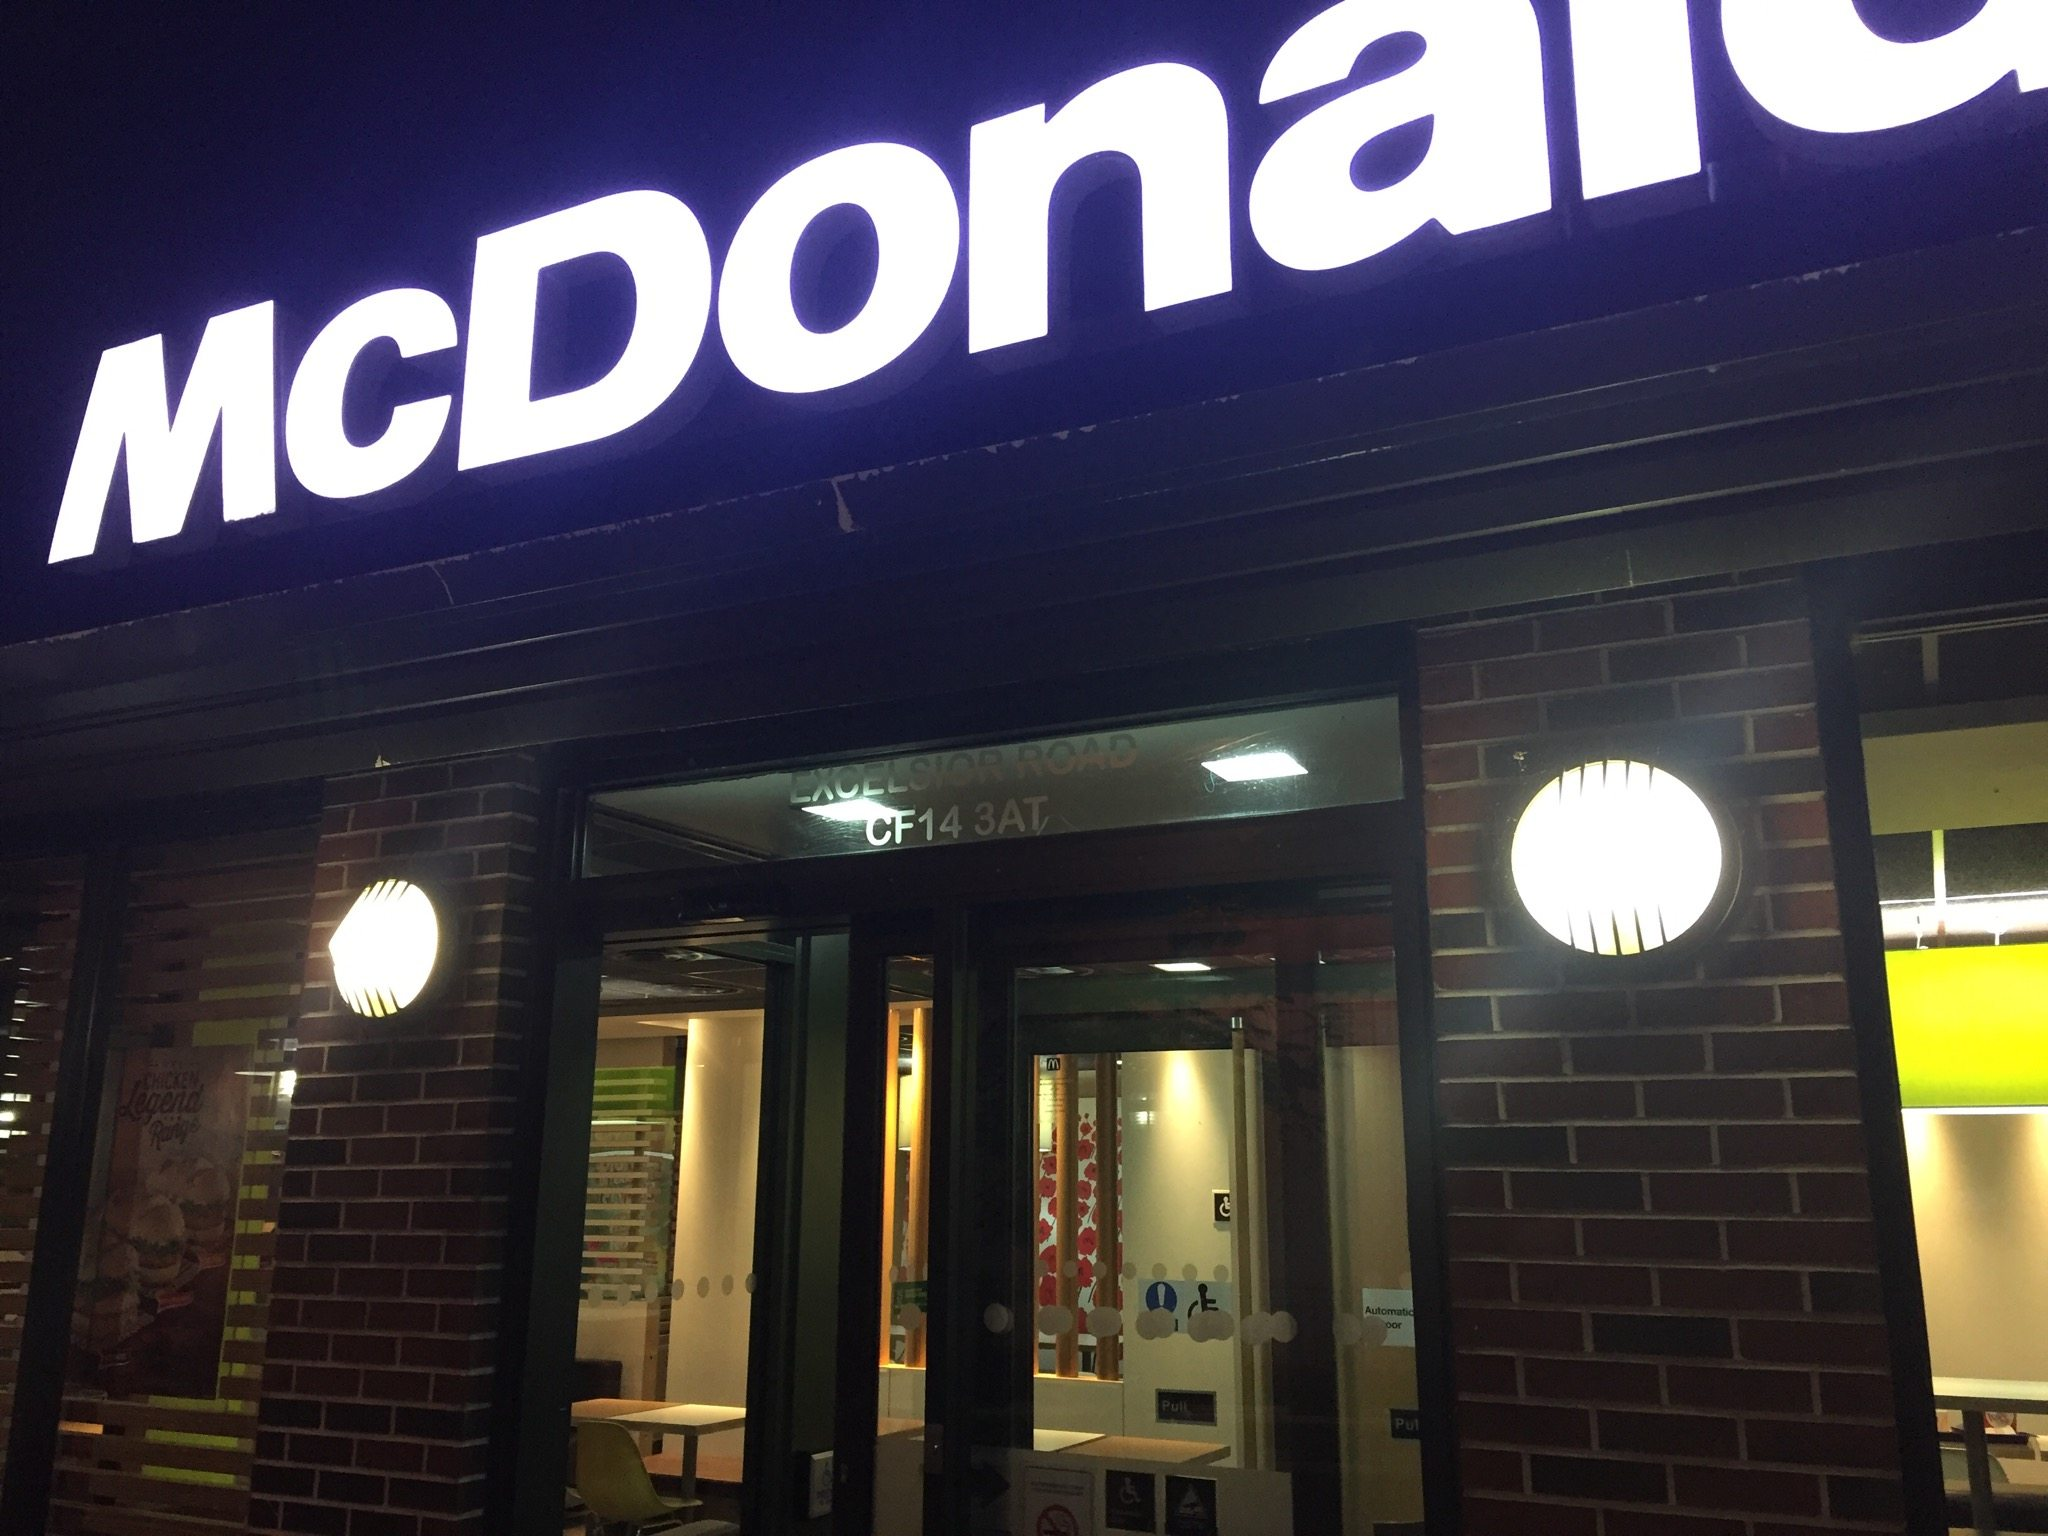 mcdonald's senior restaurant case study Answer to bridgett bowen is manager of a mcdonald's restaurant in a city with many seniors she has noticed that some senior c.